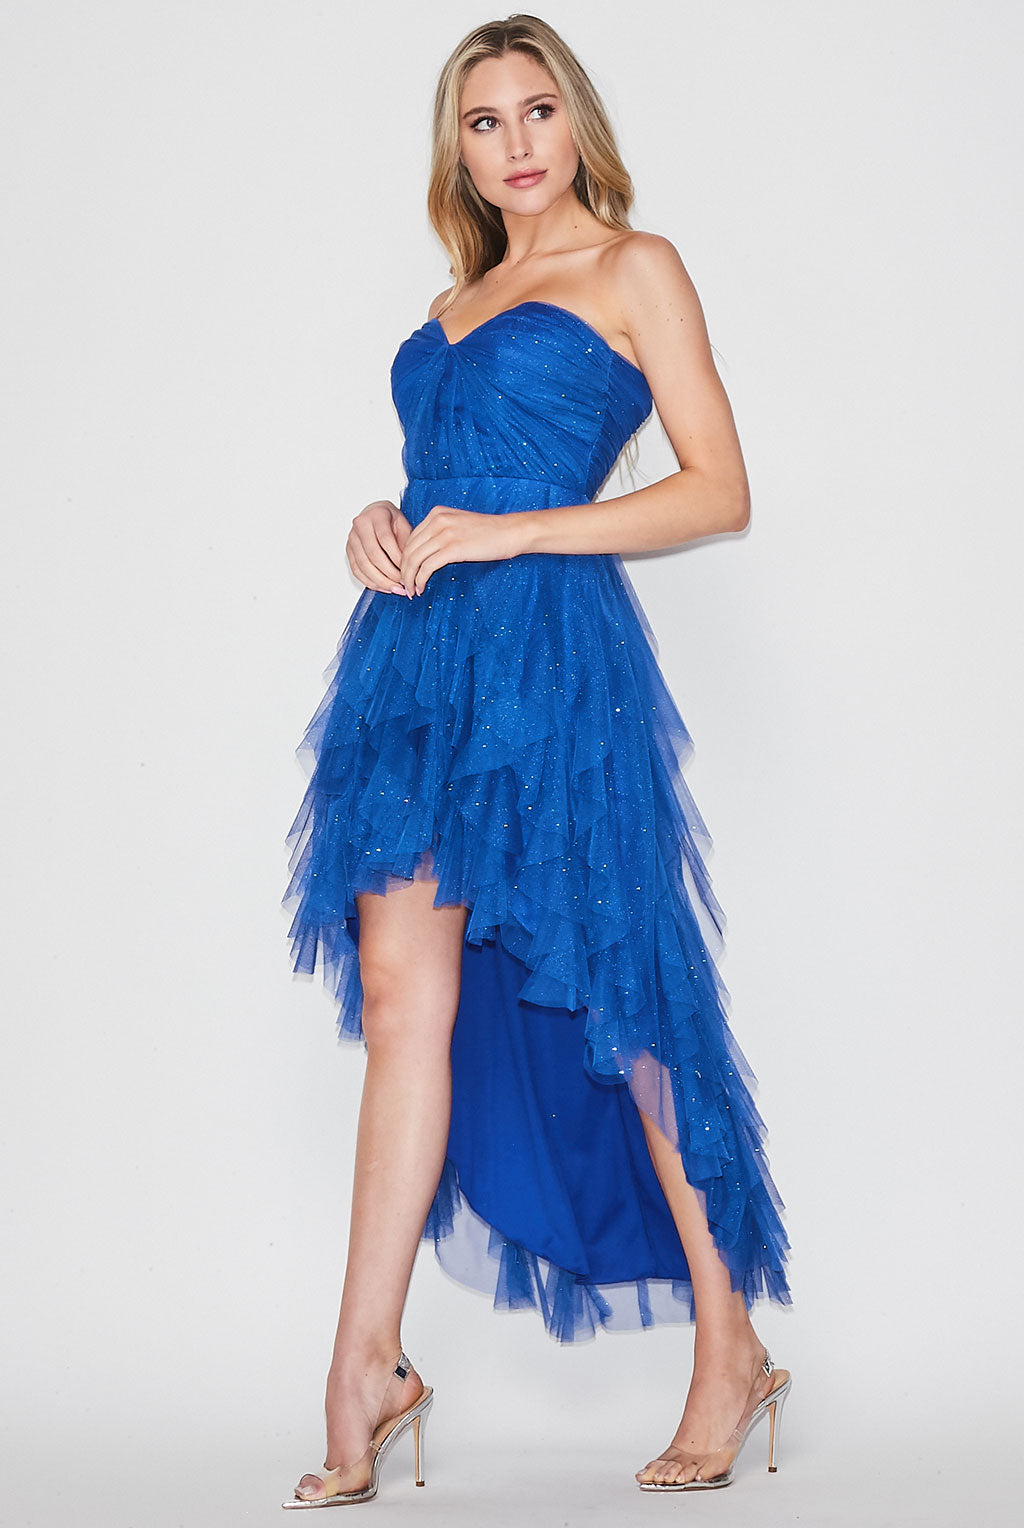 Teeze Me | Strapless Glitter Mesh Petal High Low Prom Dress | Royal